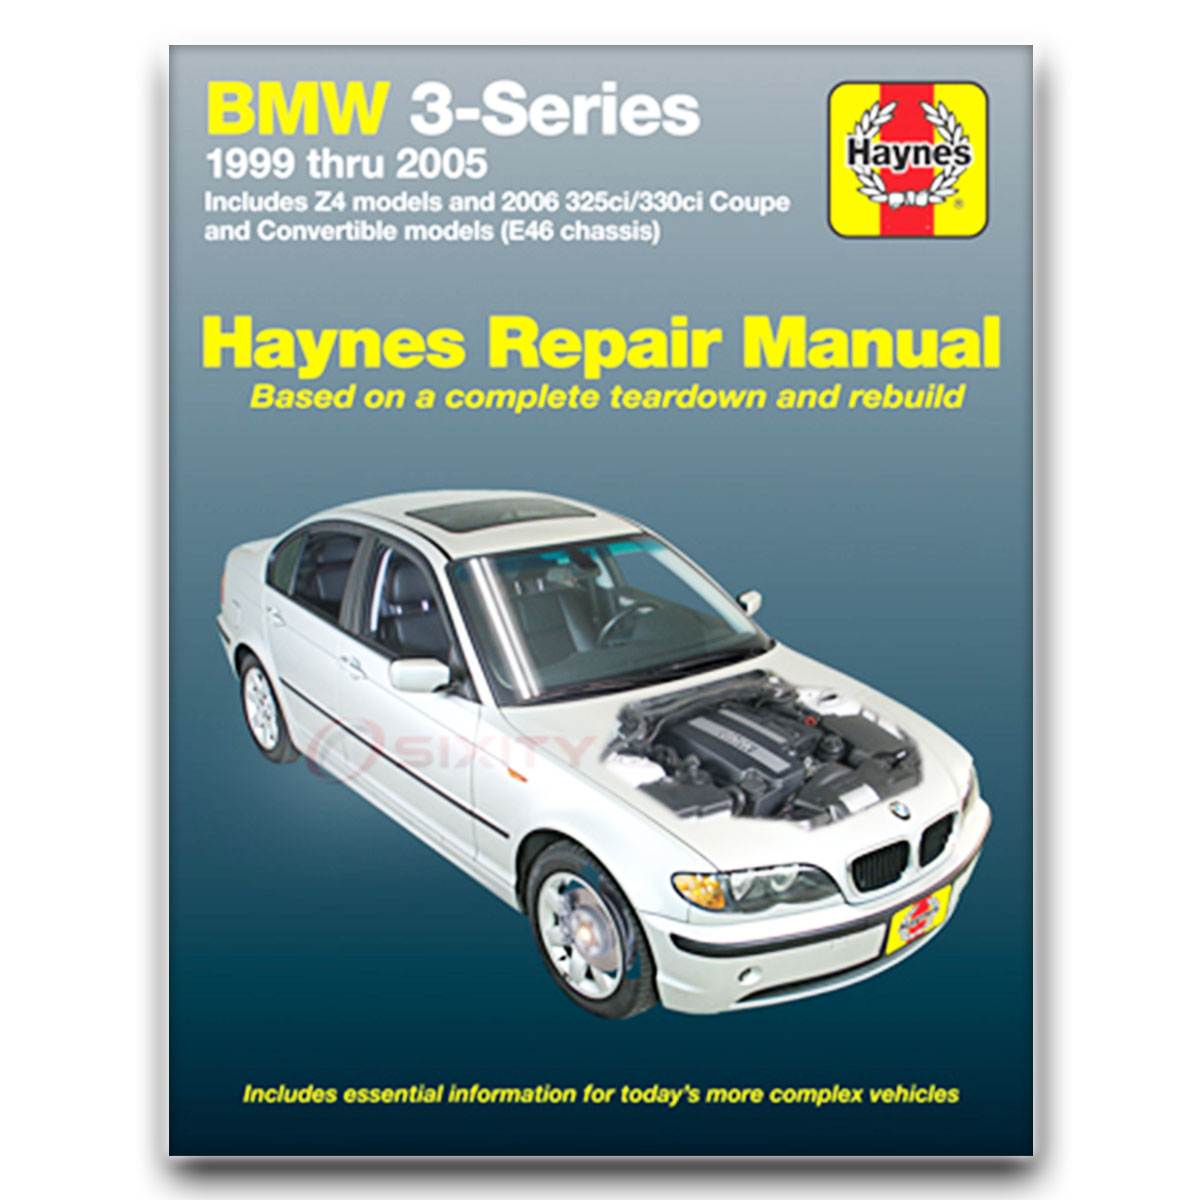 BMW 323i Haynes Repair Manual Base Shop Service Garage Book mf